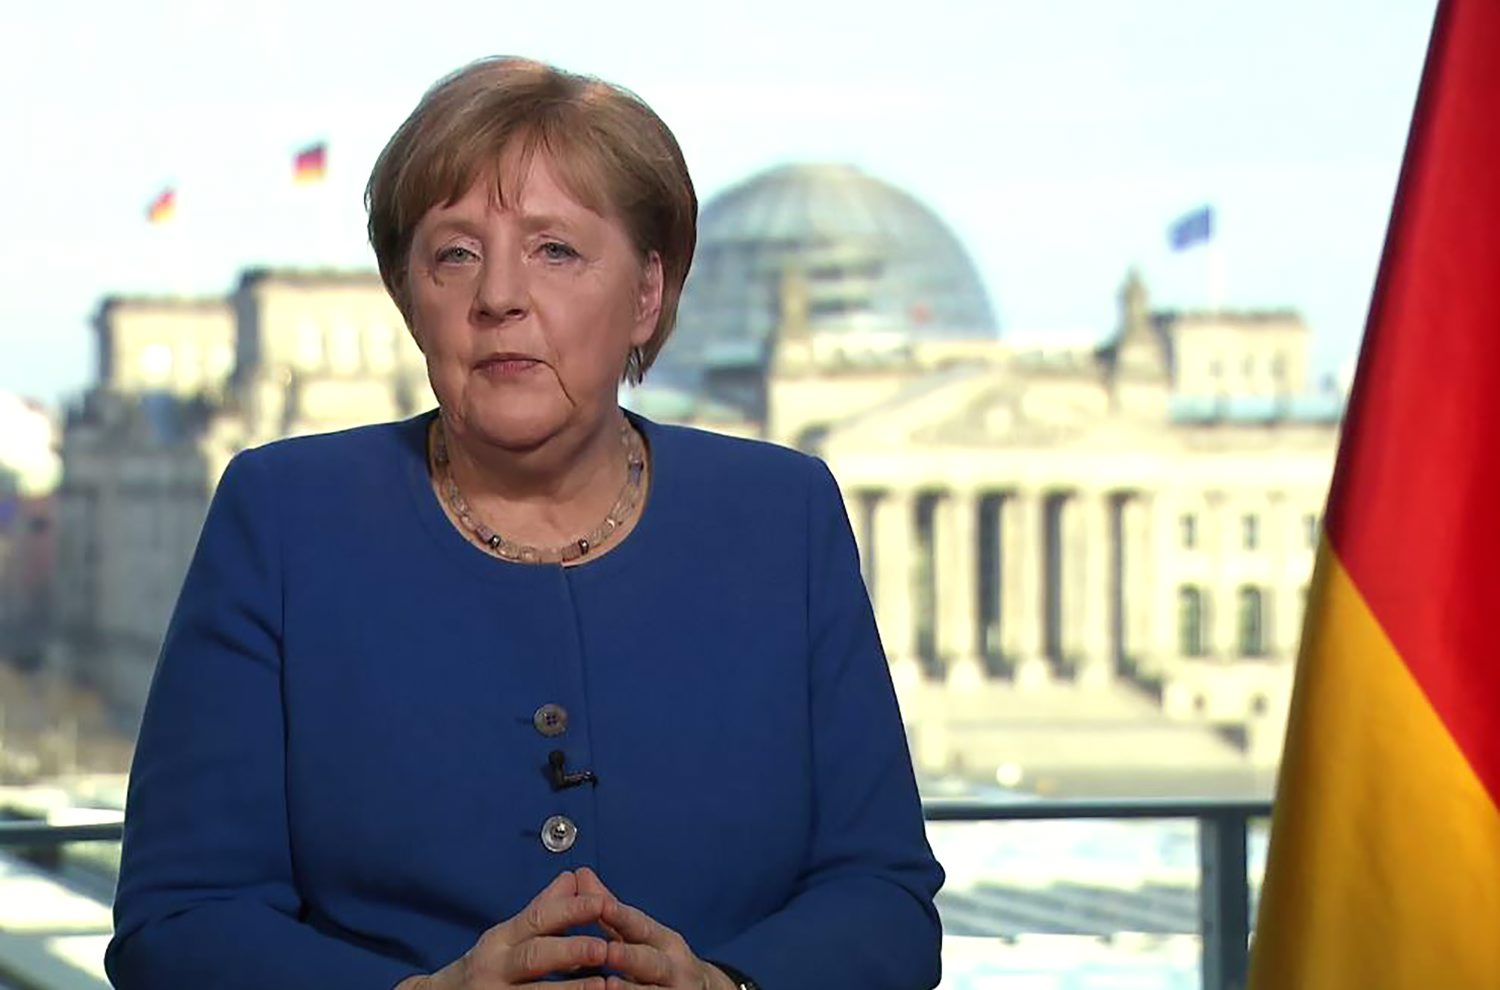 This videograb taken from German TV channel ARD on March 18, 2020 shows German Chancellor Angela Merkel addressing the nation on the spread of the new coronavirus COVID-19 at the Chancellery, with a view in the background of the Reichstag, the building housing the lower house of parliament. - Germany is facing its biggest challenge